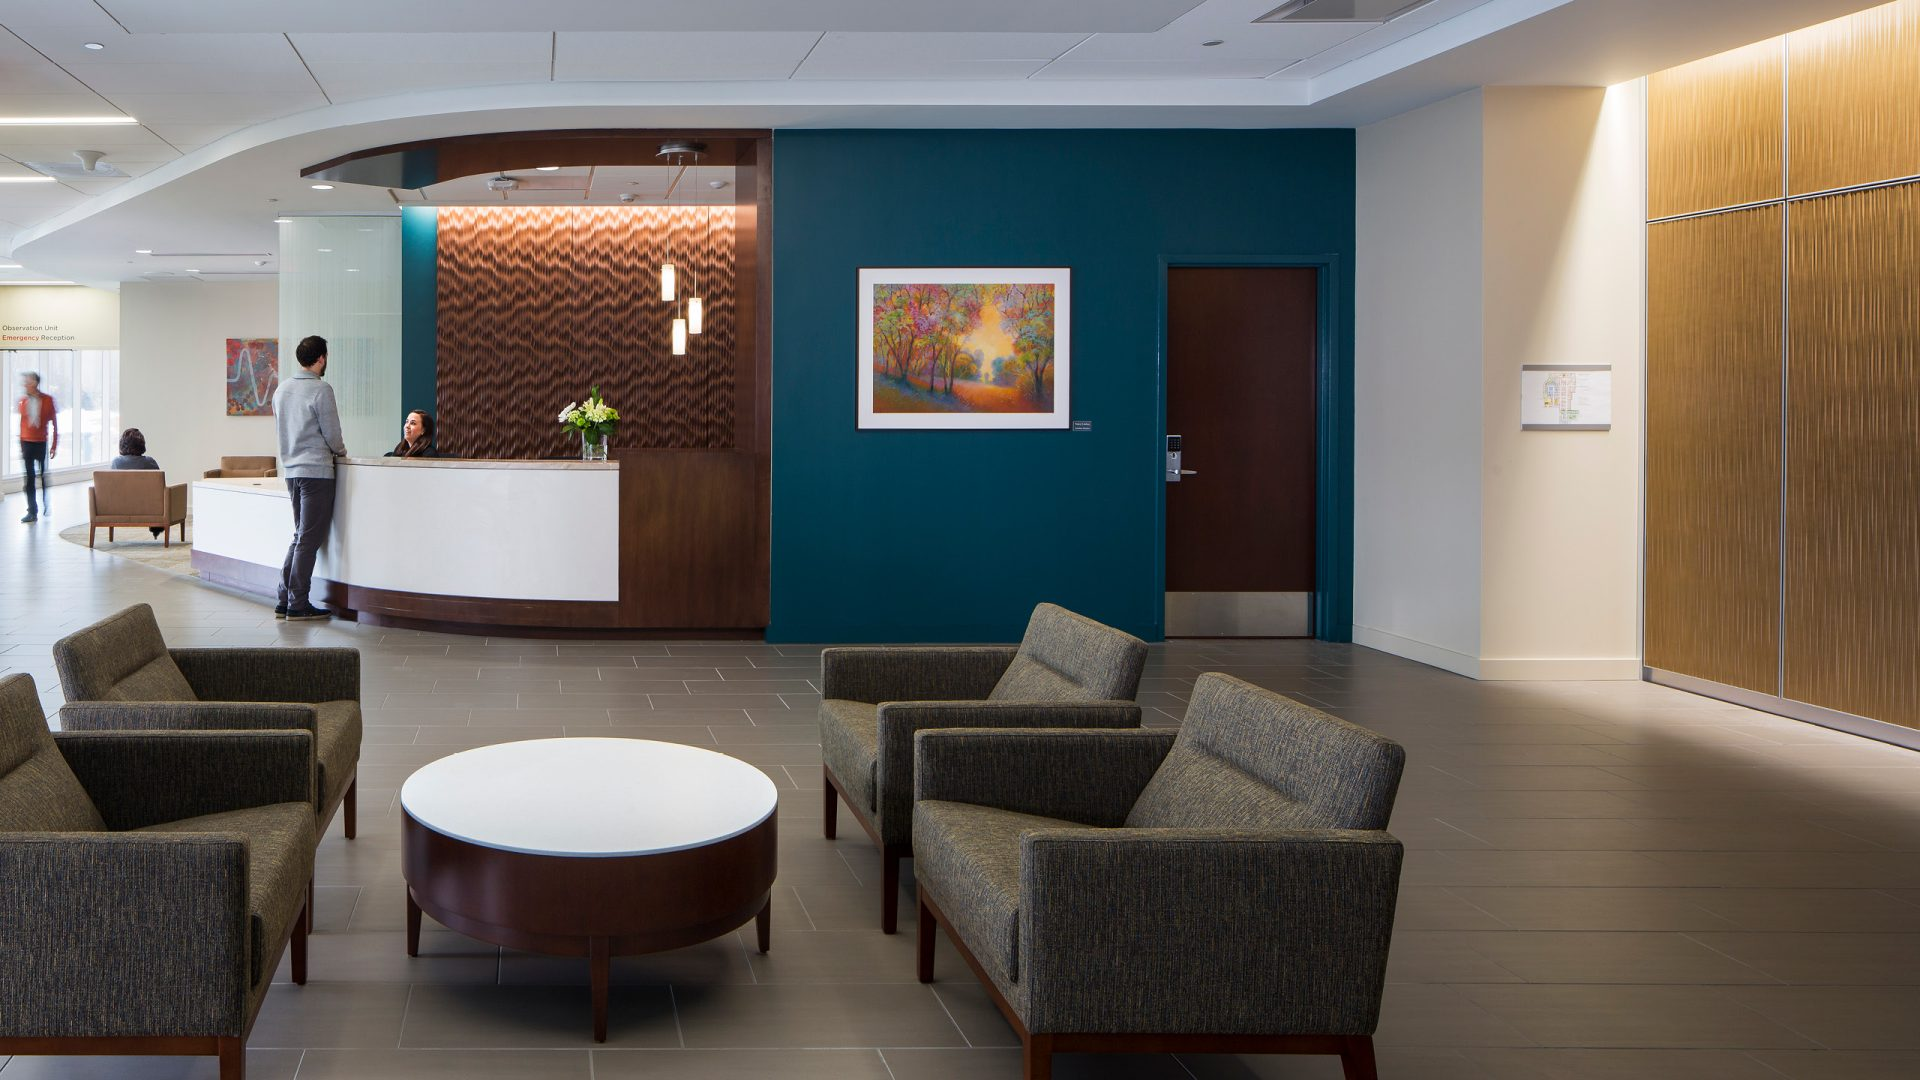 blue and brown lobby at UnityPoint Health - Trinity: Heart Center & Emergency Department